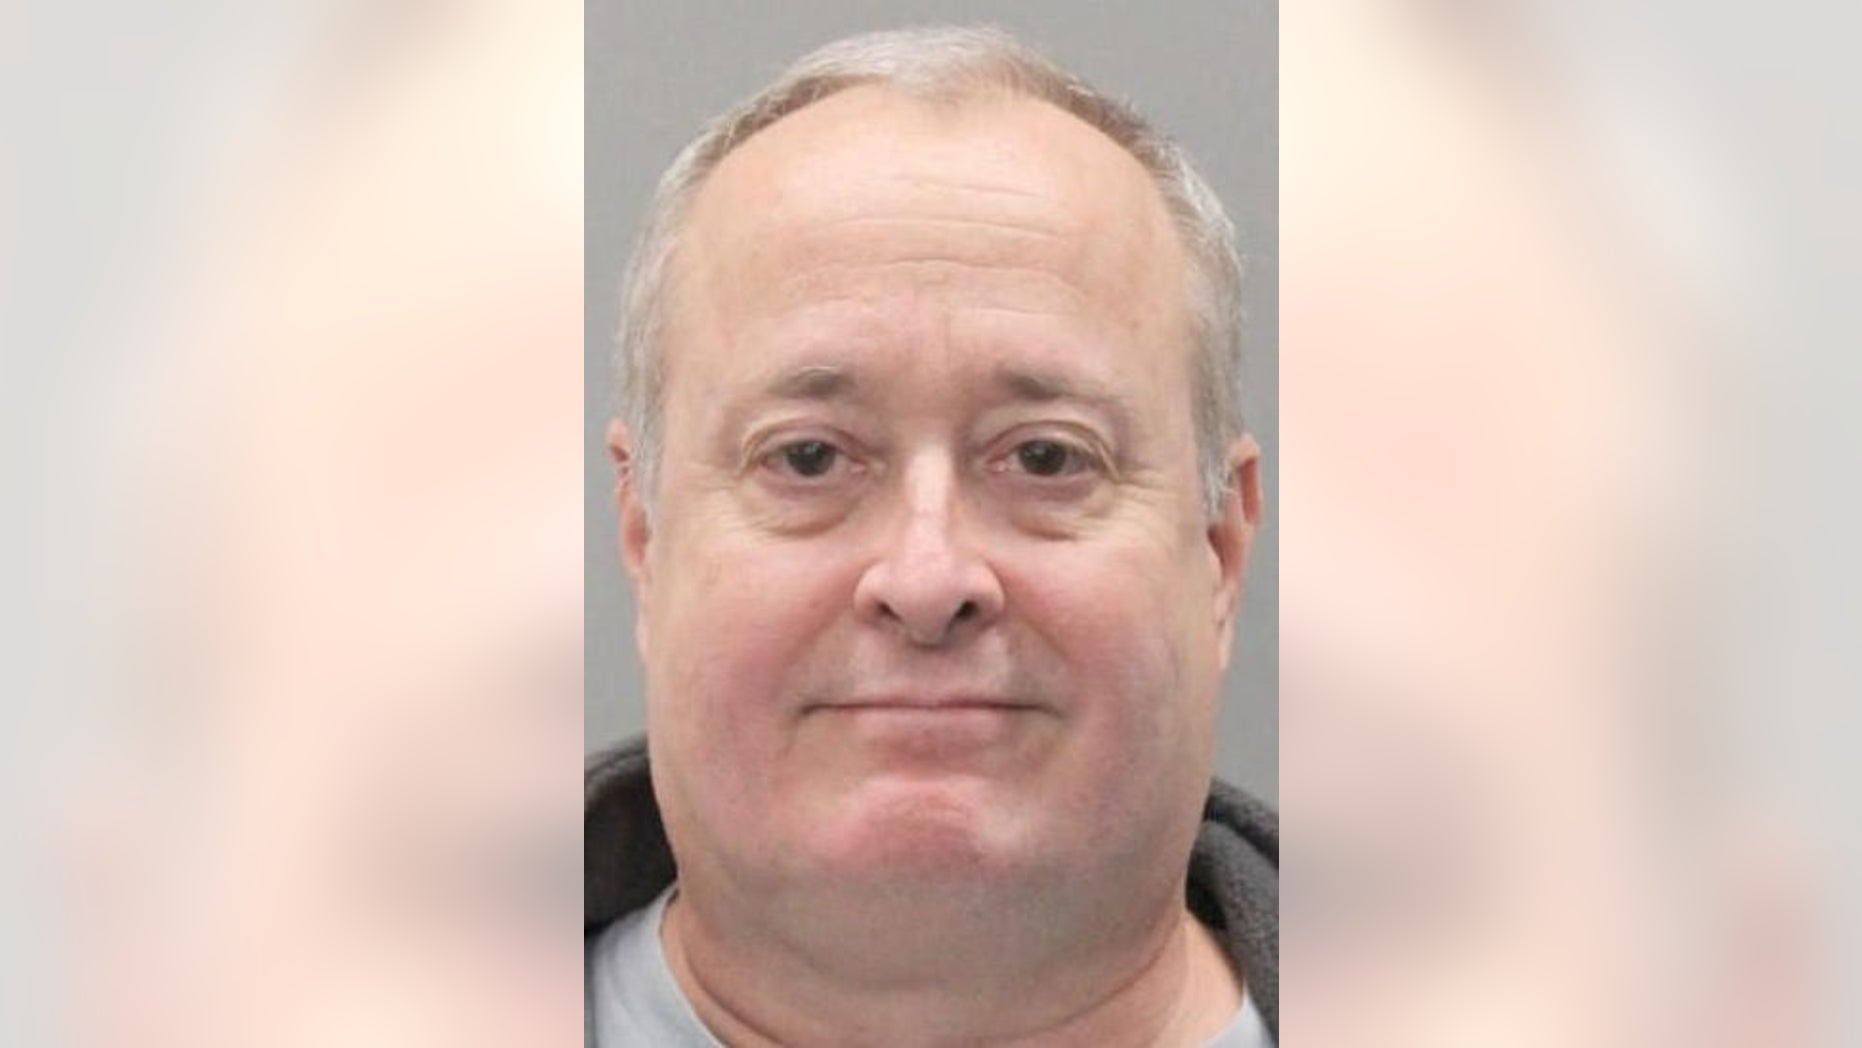 """Dale Bolinger, 62, dubbed the """"Canterbury Cannibal"""" has moved to Blair, Neb., and neighbors were concerned."""